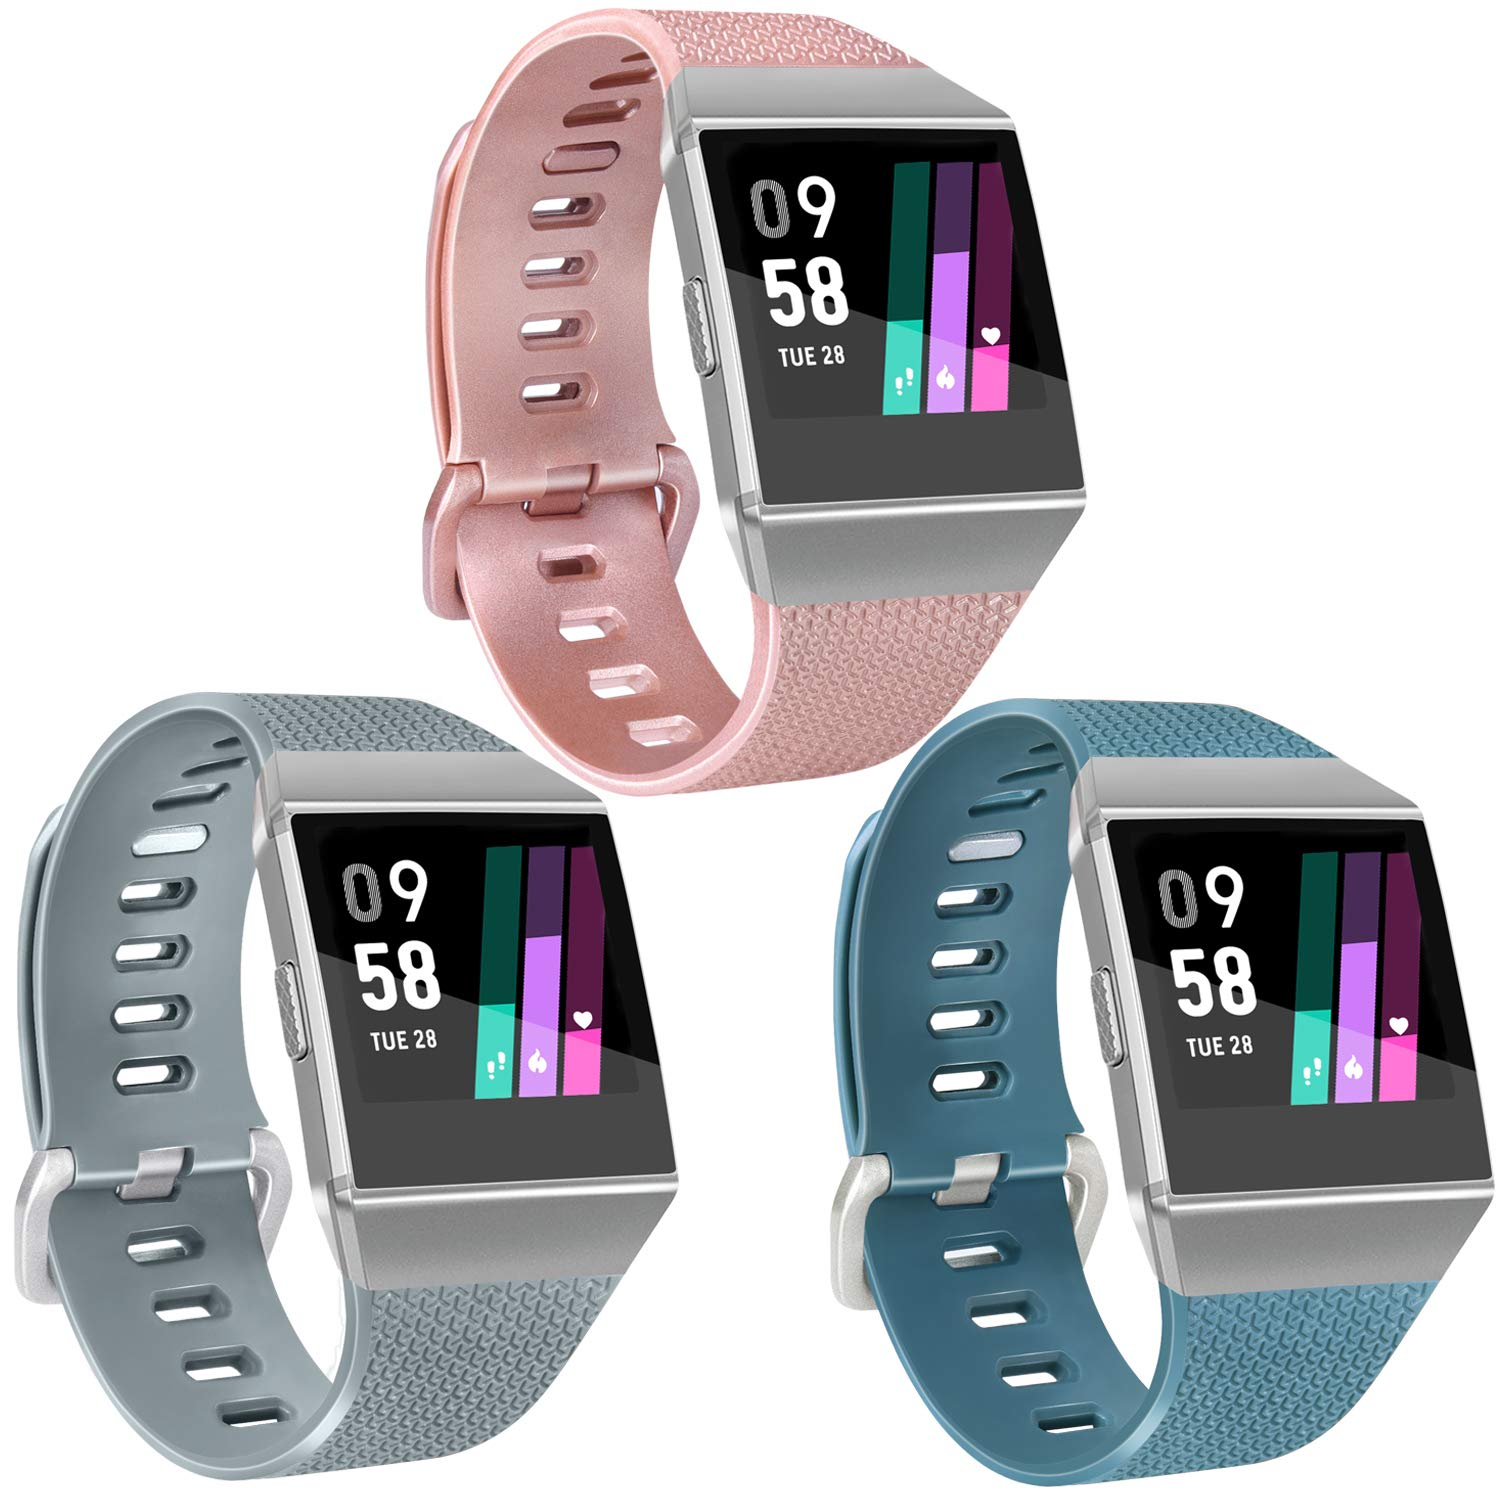 Vancle Sport Bands Compatible with Fitbit Ionic Smartwatch 3 Pack